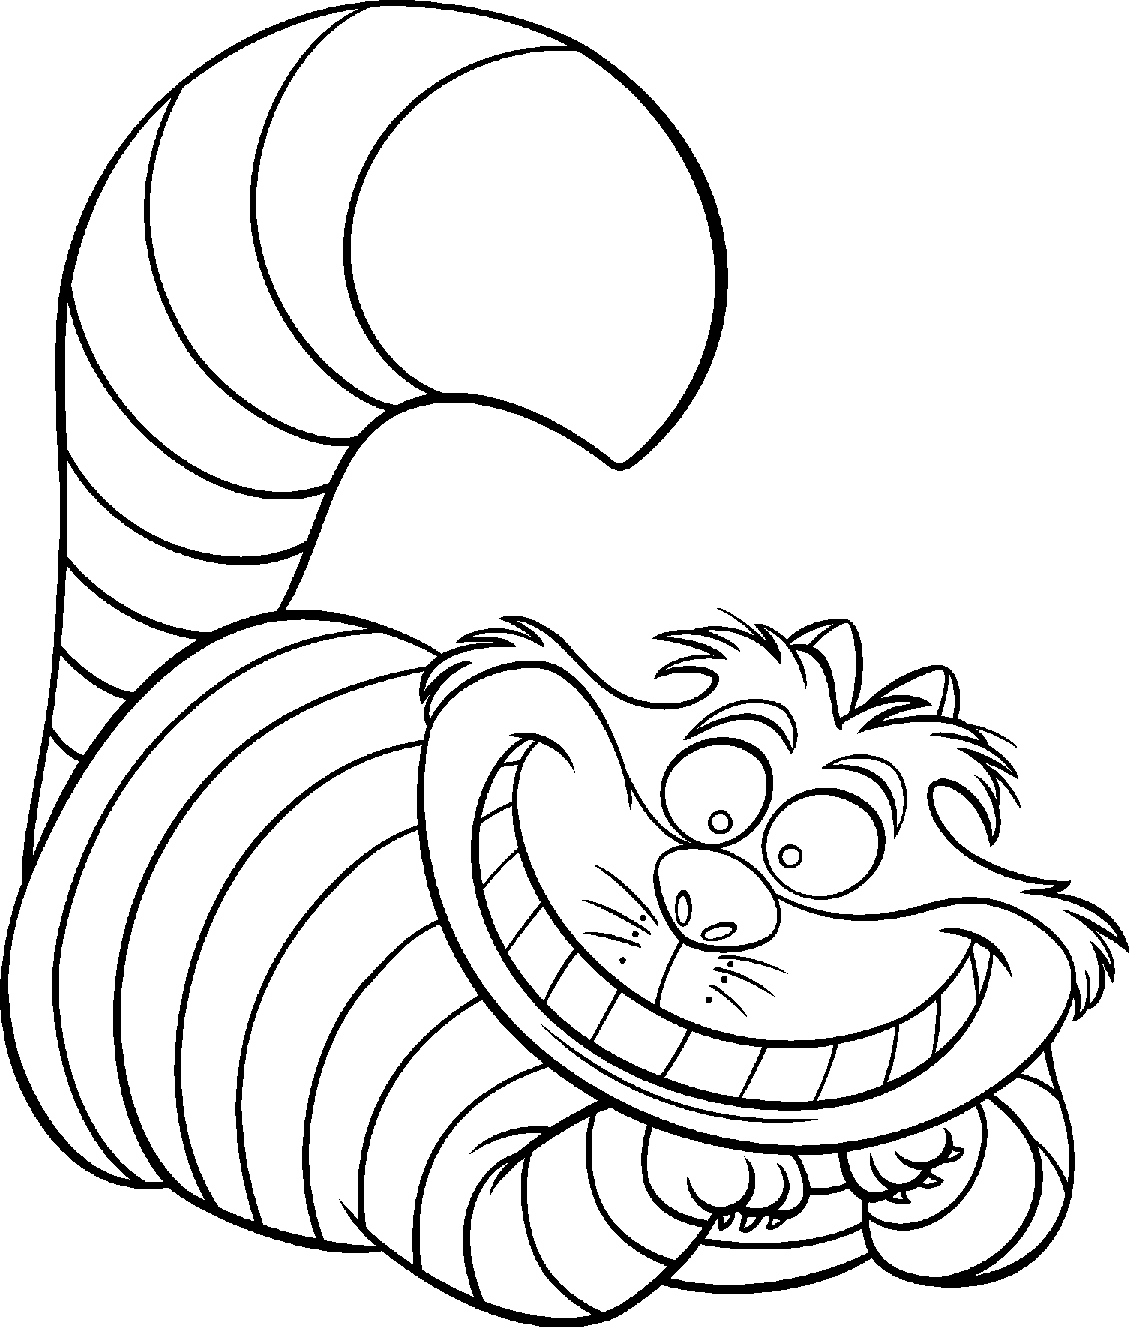 Cartoon Coloring Pages Printable Coloring Pages